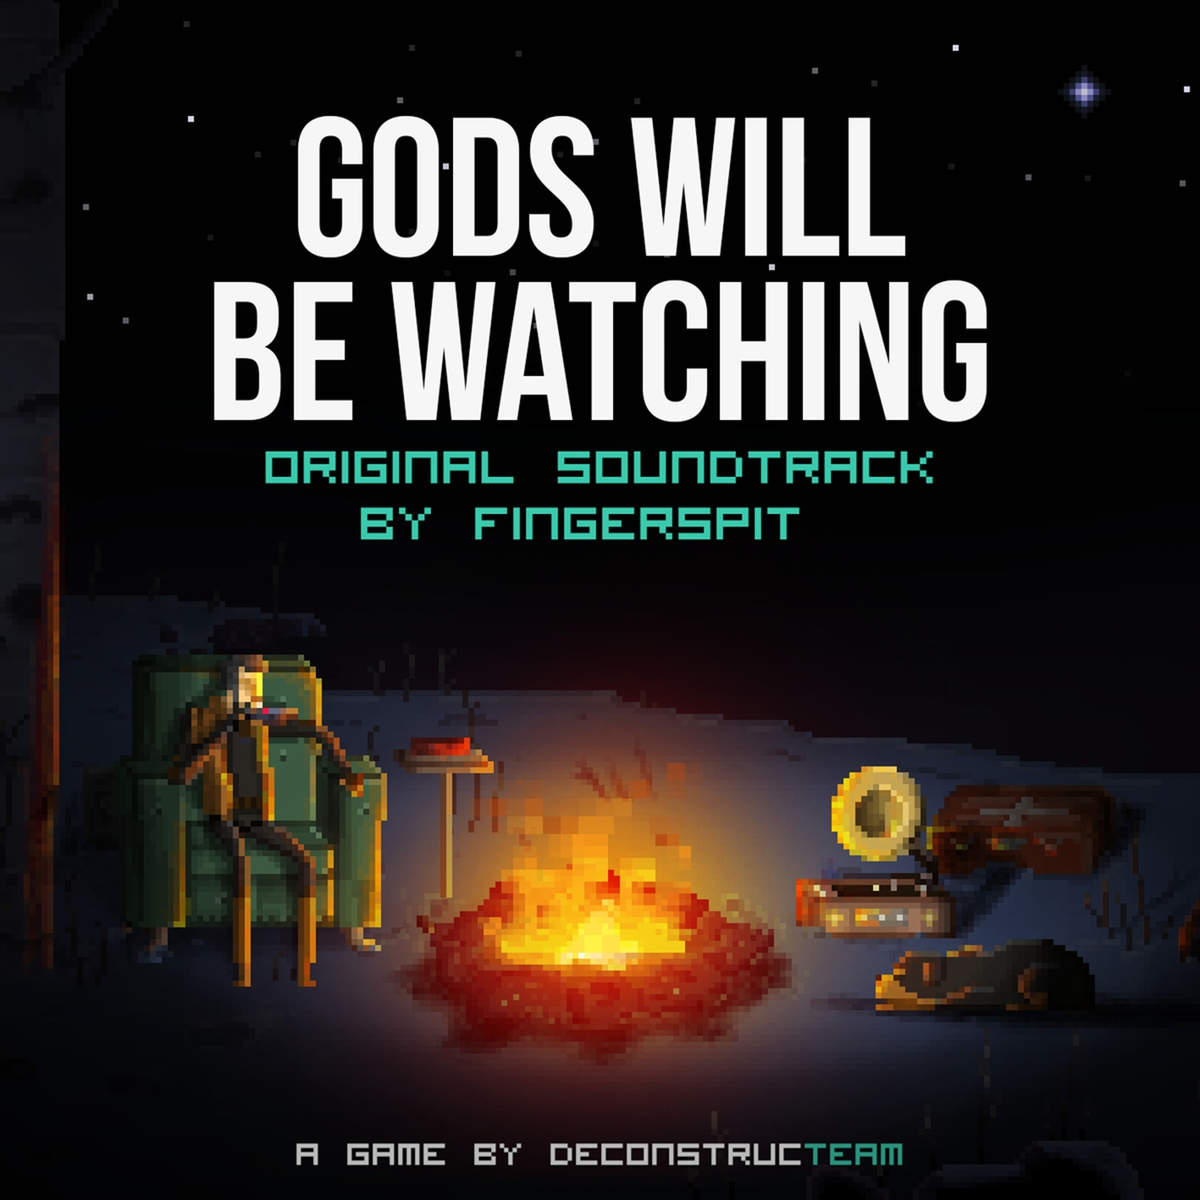 Gods_Will_Be_Watching_Original_Soundtrack__cover1200x1200.jpeg